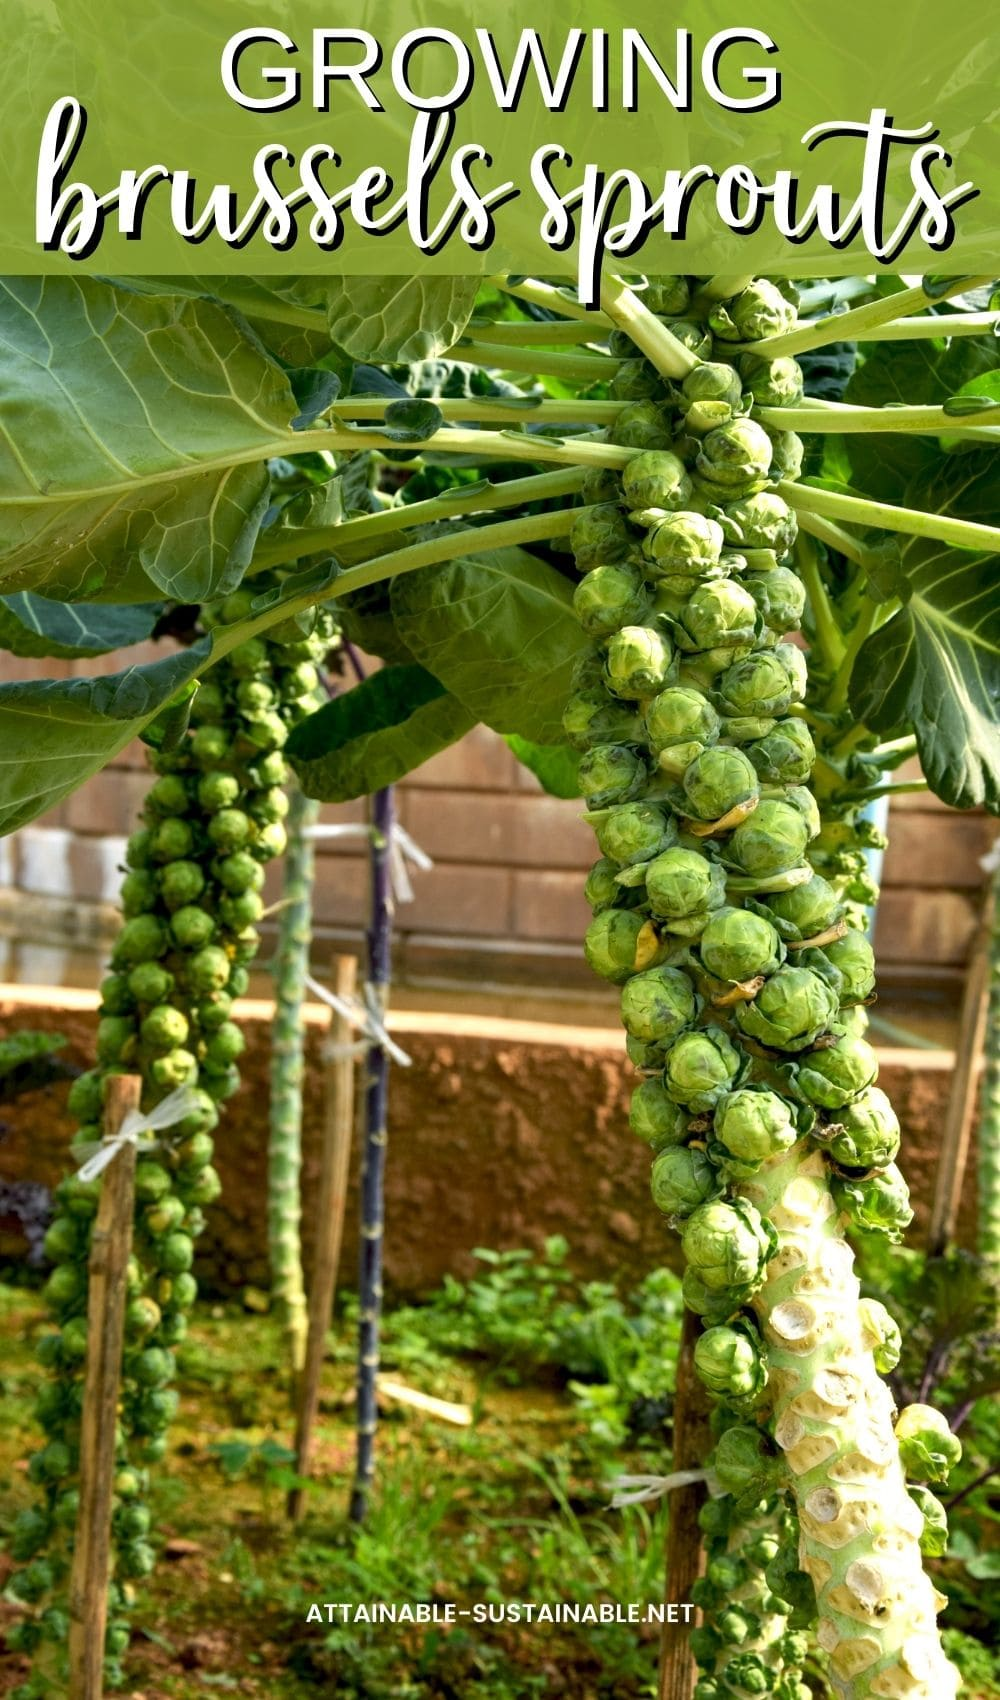 stalks of Brussels sprouts growing in a garden